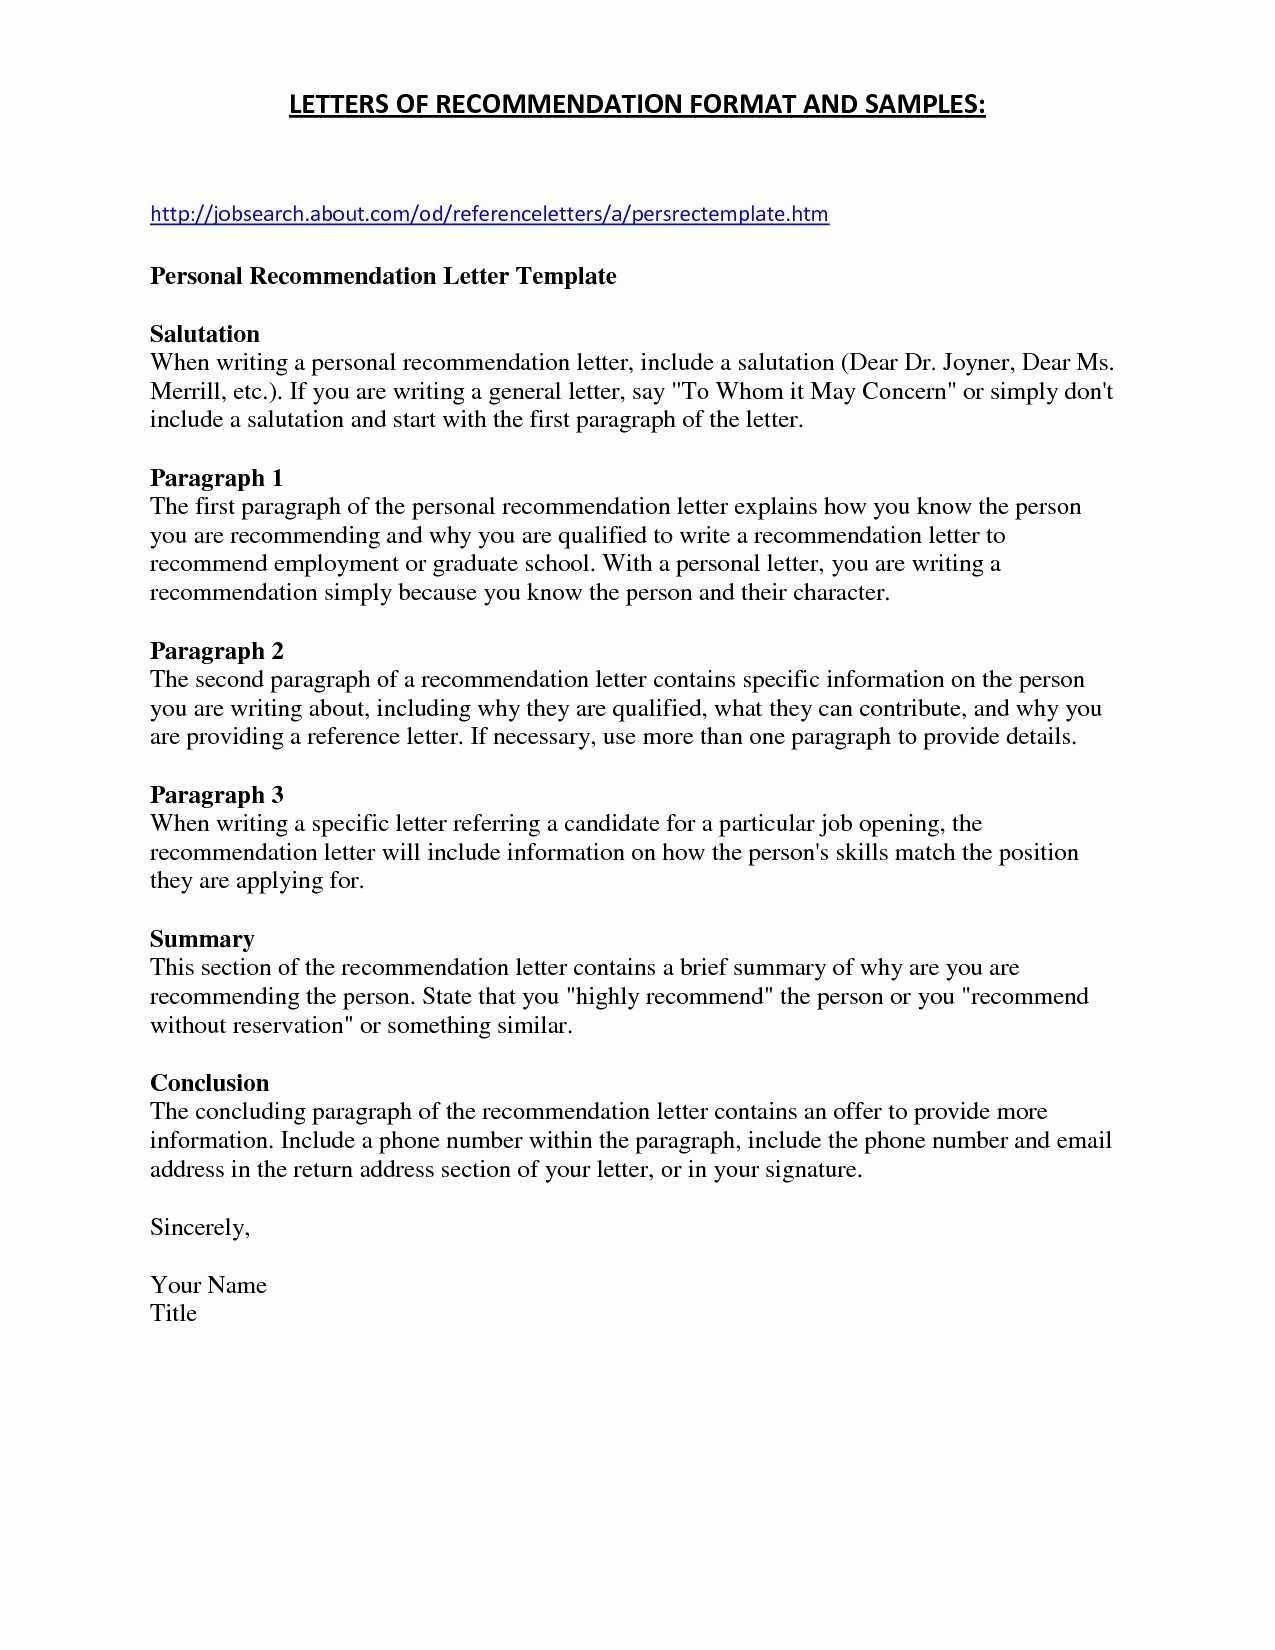 program acceptance letter template example-Acceptance Letter Format For Business Proposal Fresh Business Proposal Acceptance Letter Template Examples 1-d